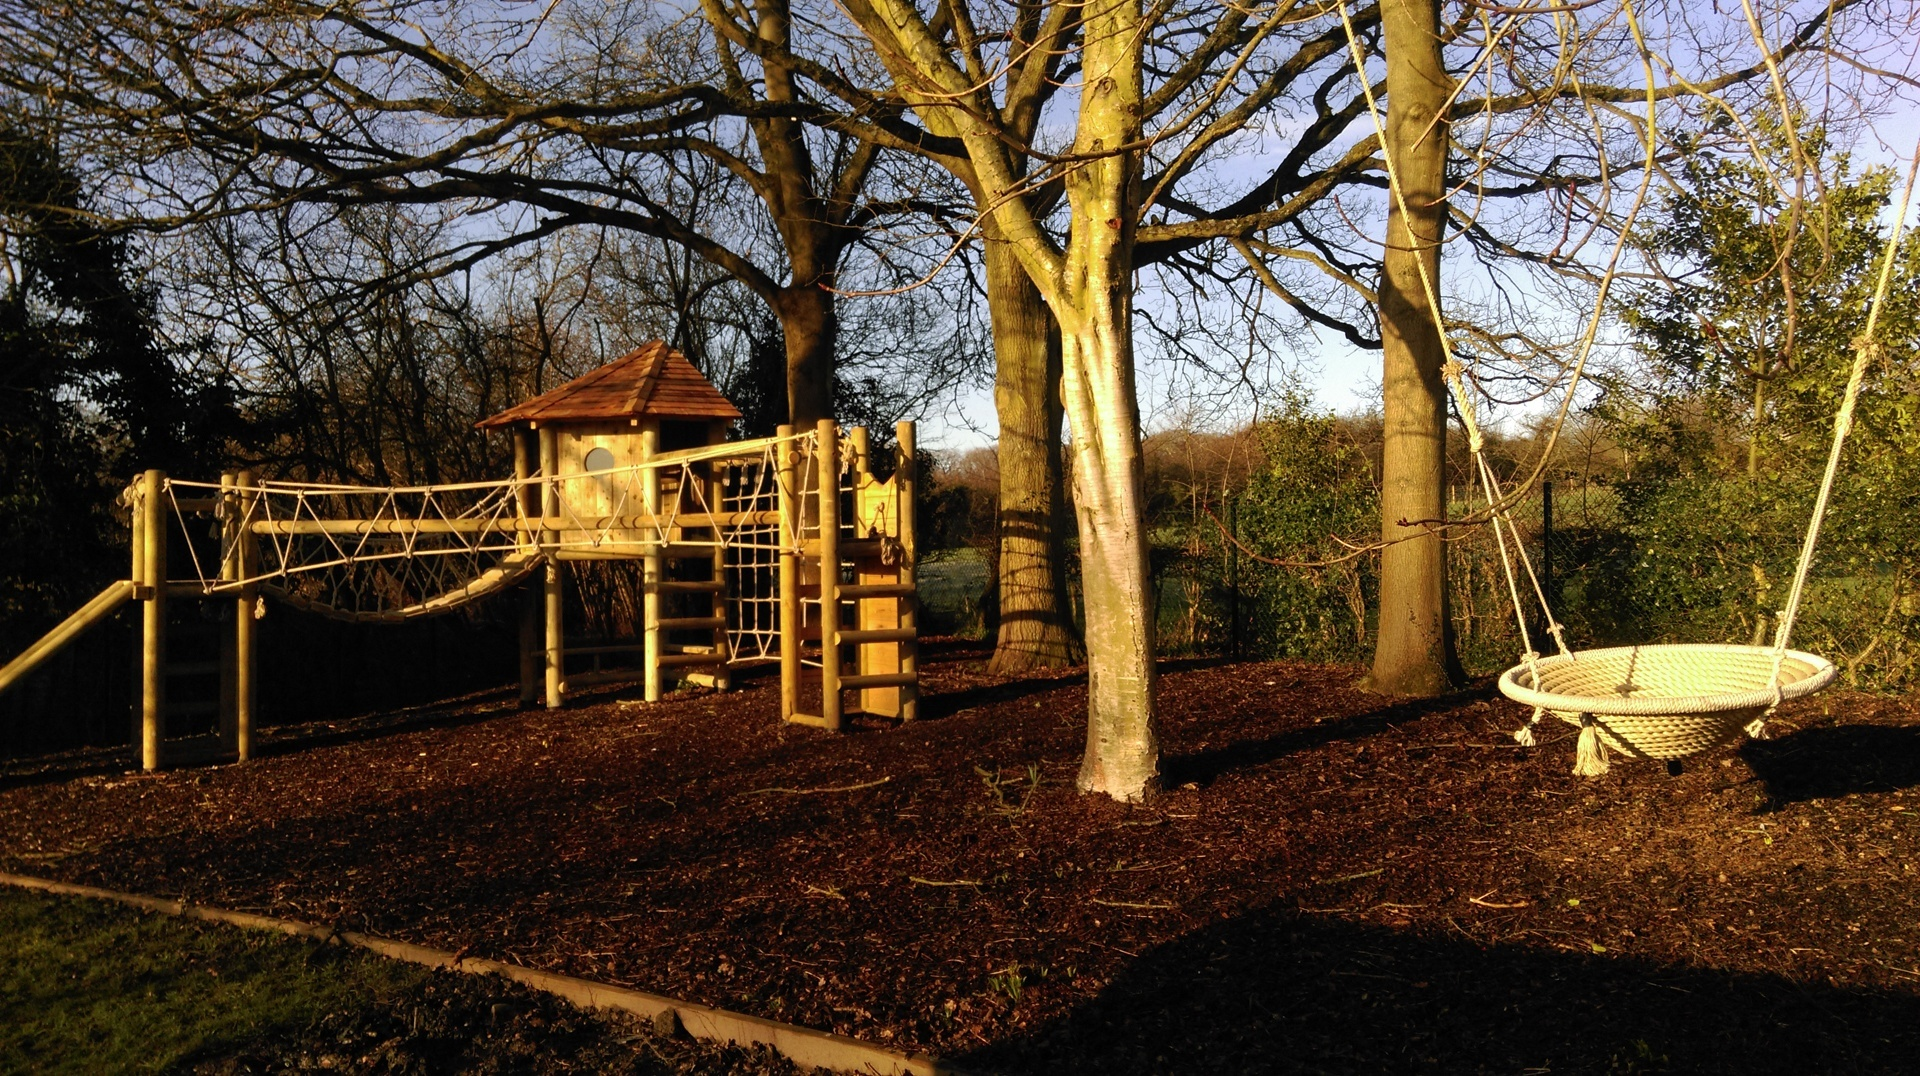 Bespoke Climbing Frames designed and built by JC Climbing Frames